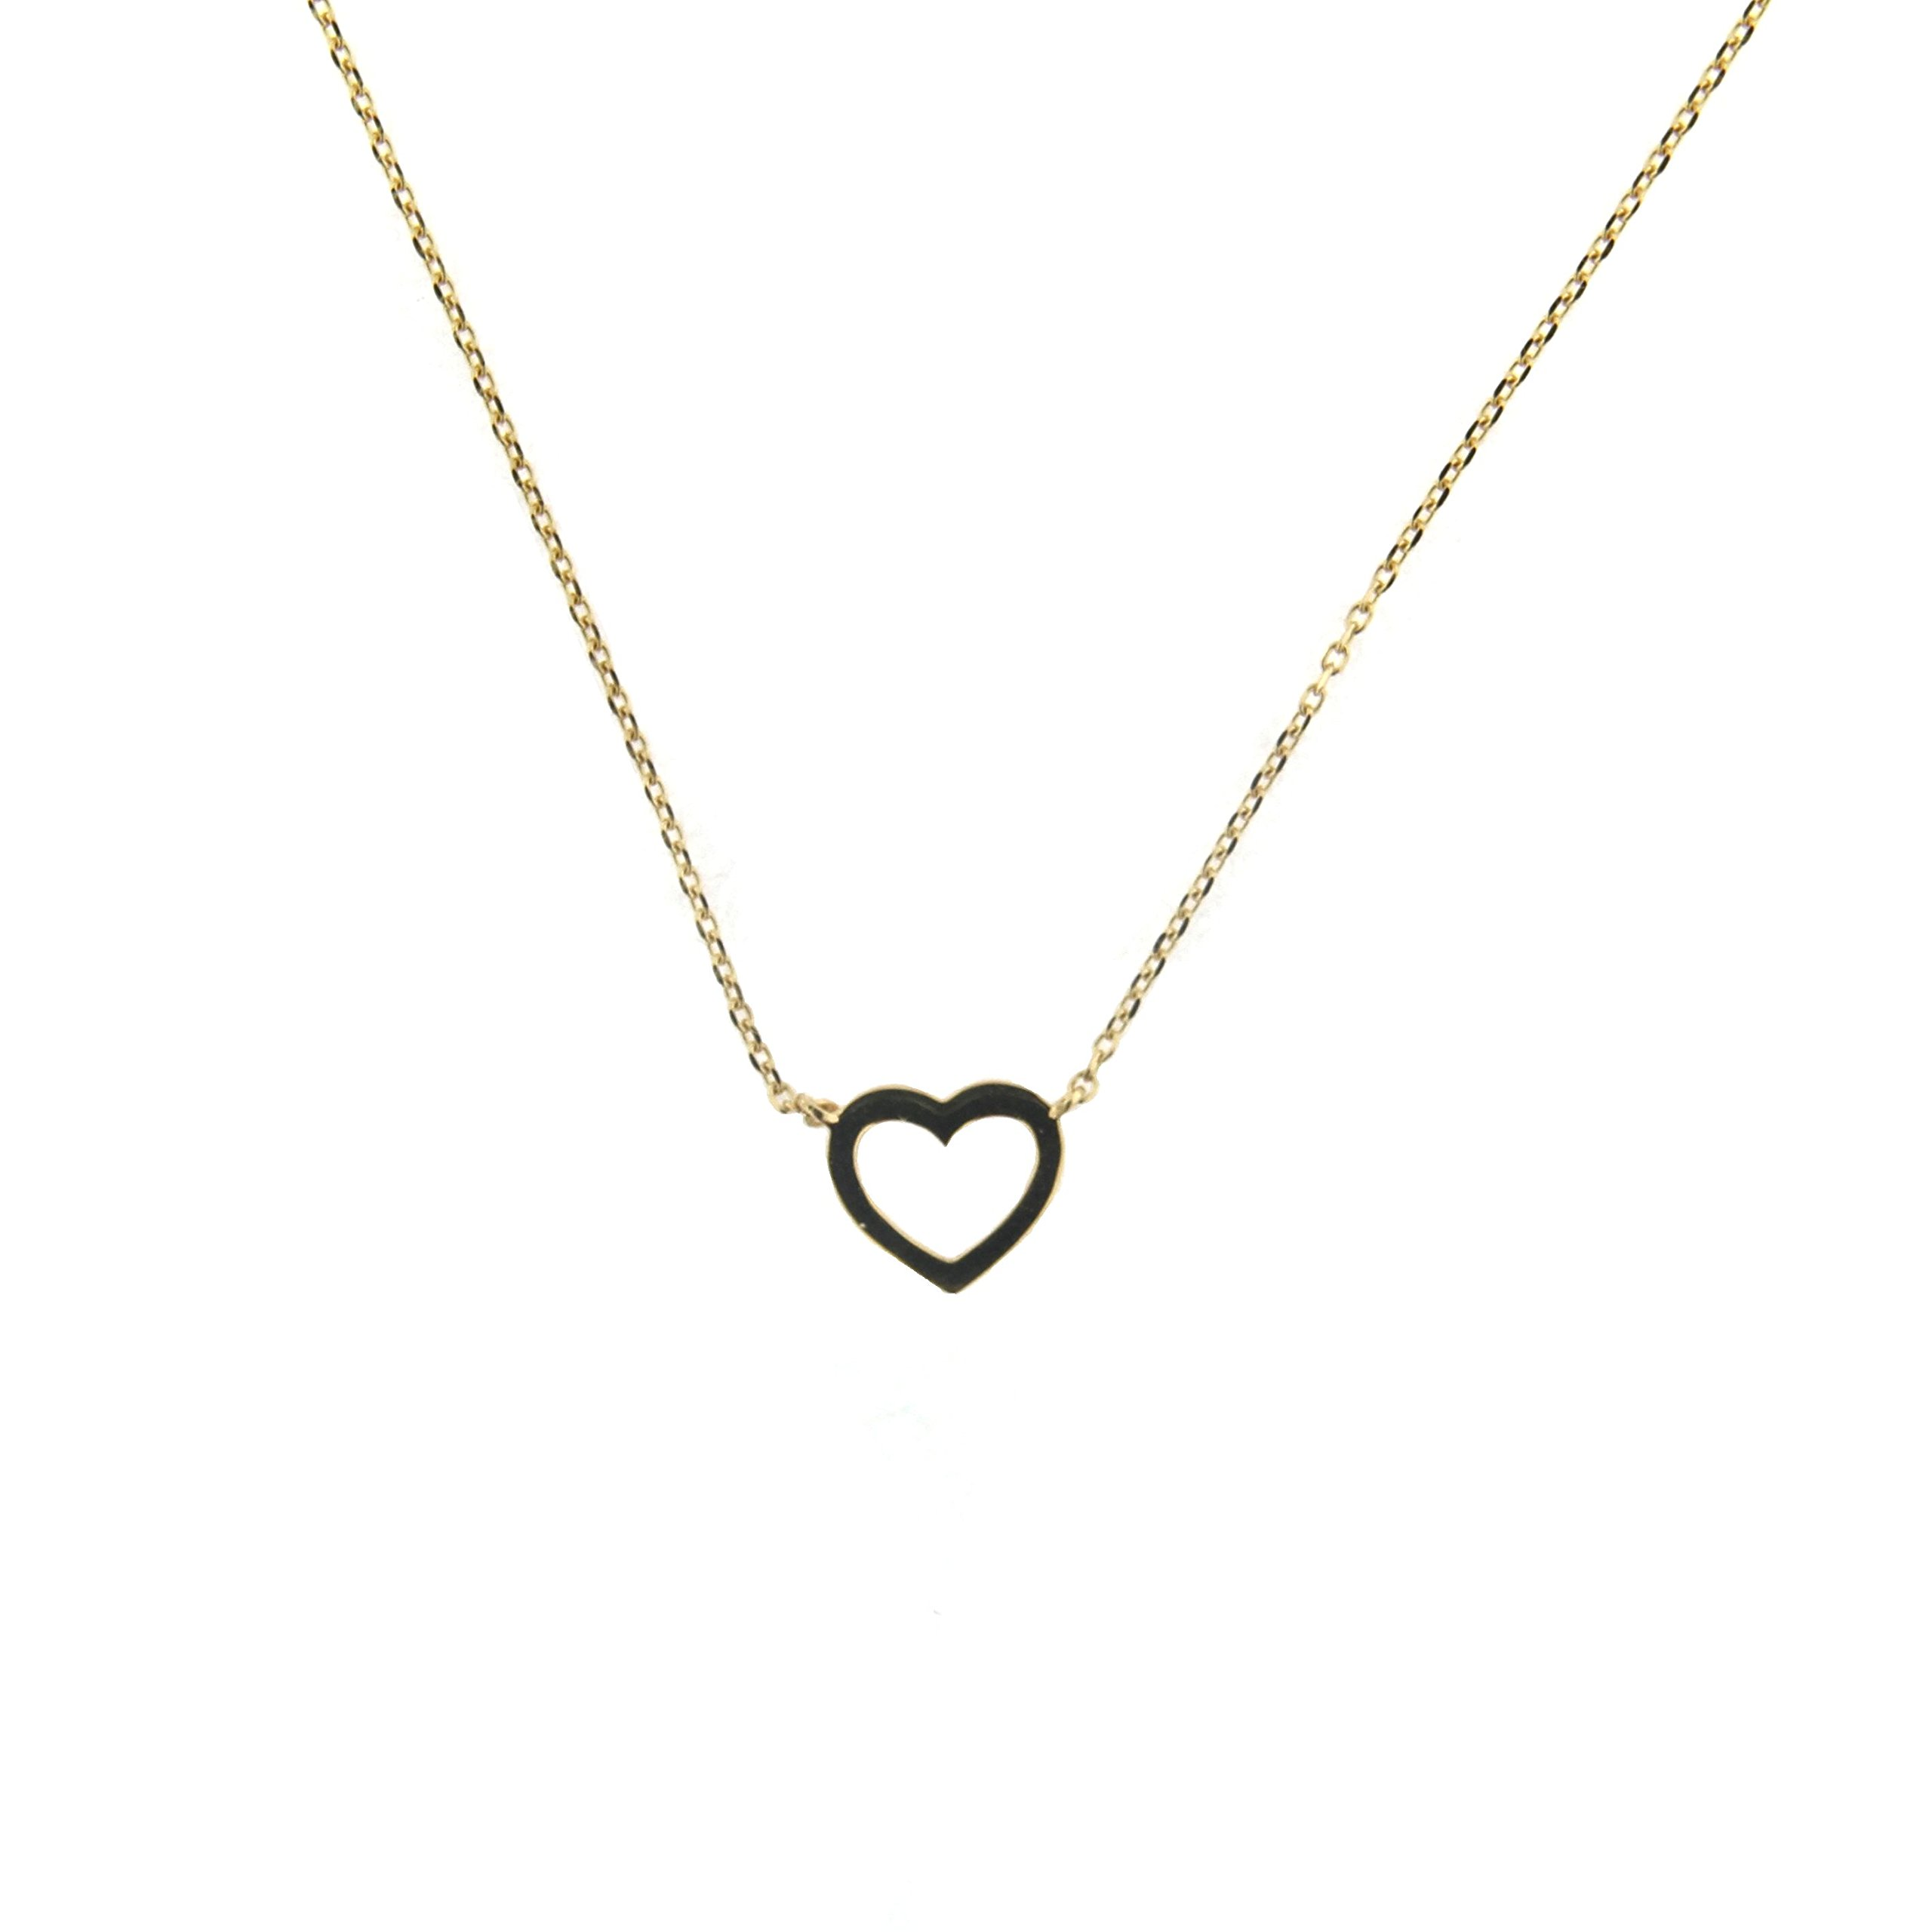 18K Yellow Gold Heart Necklace 16 inches with extra ring at 15 inches